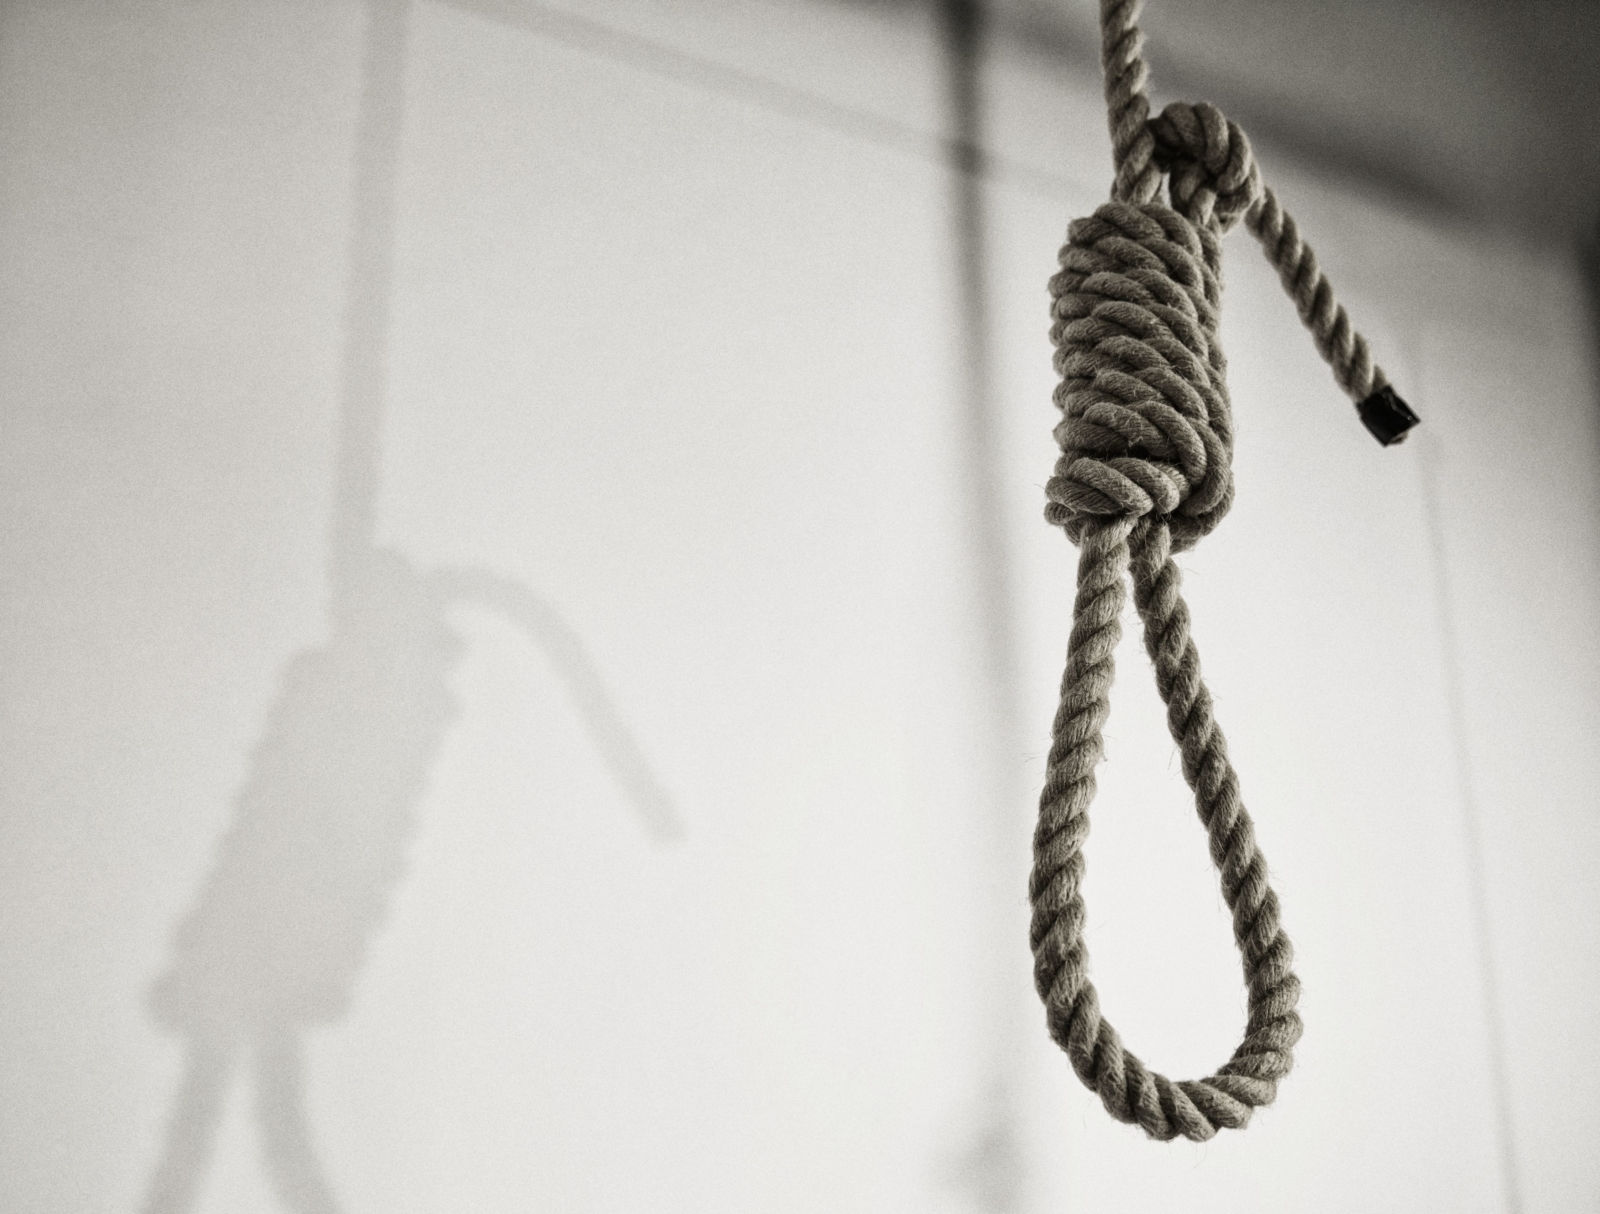 Death penalty: Global abolition closer than ever as record number of countries vote to end executions